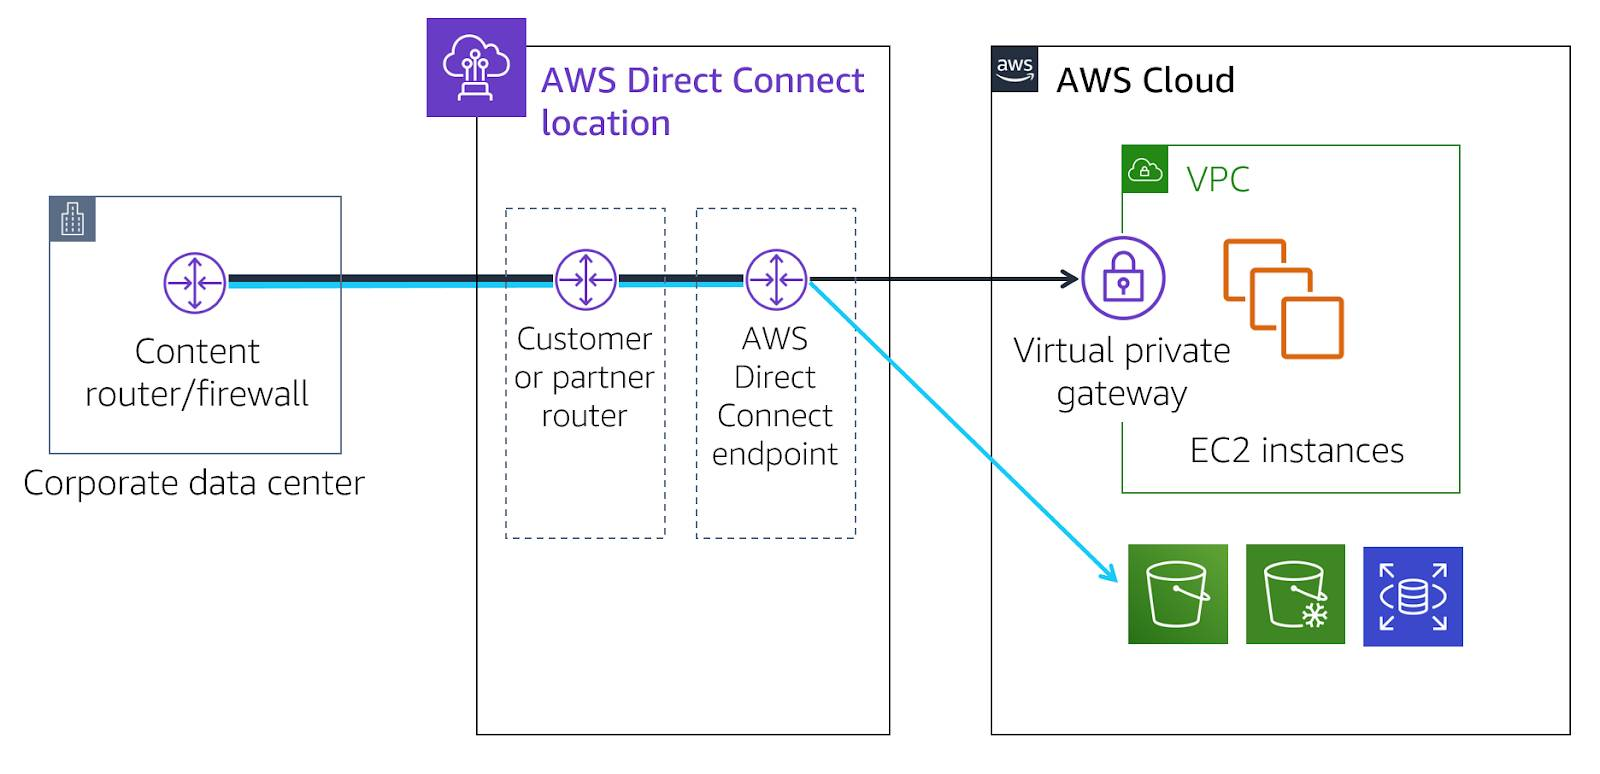 Diagram showing corporate data center connecting to AWS Direct Connect location router, then an AWS Direct Connect endpoint, then separately to EC2 instances in a VPC and AWS services outside of the VPC